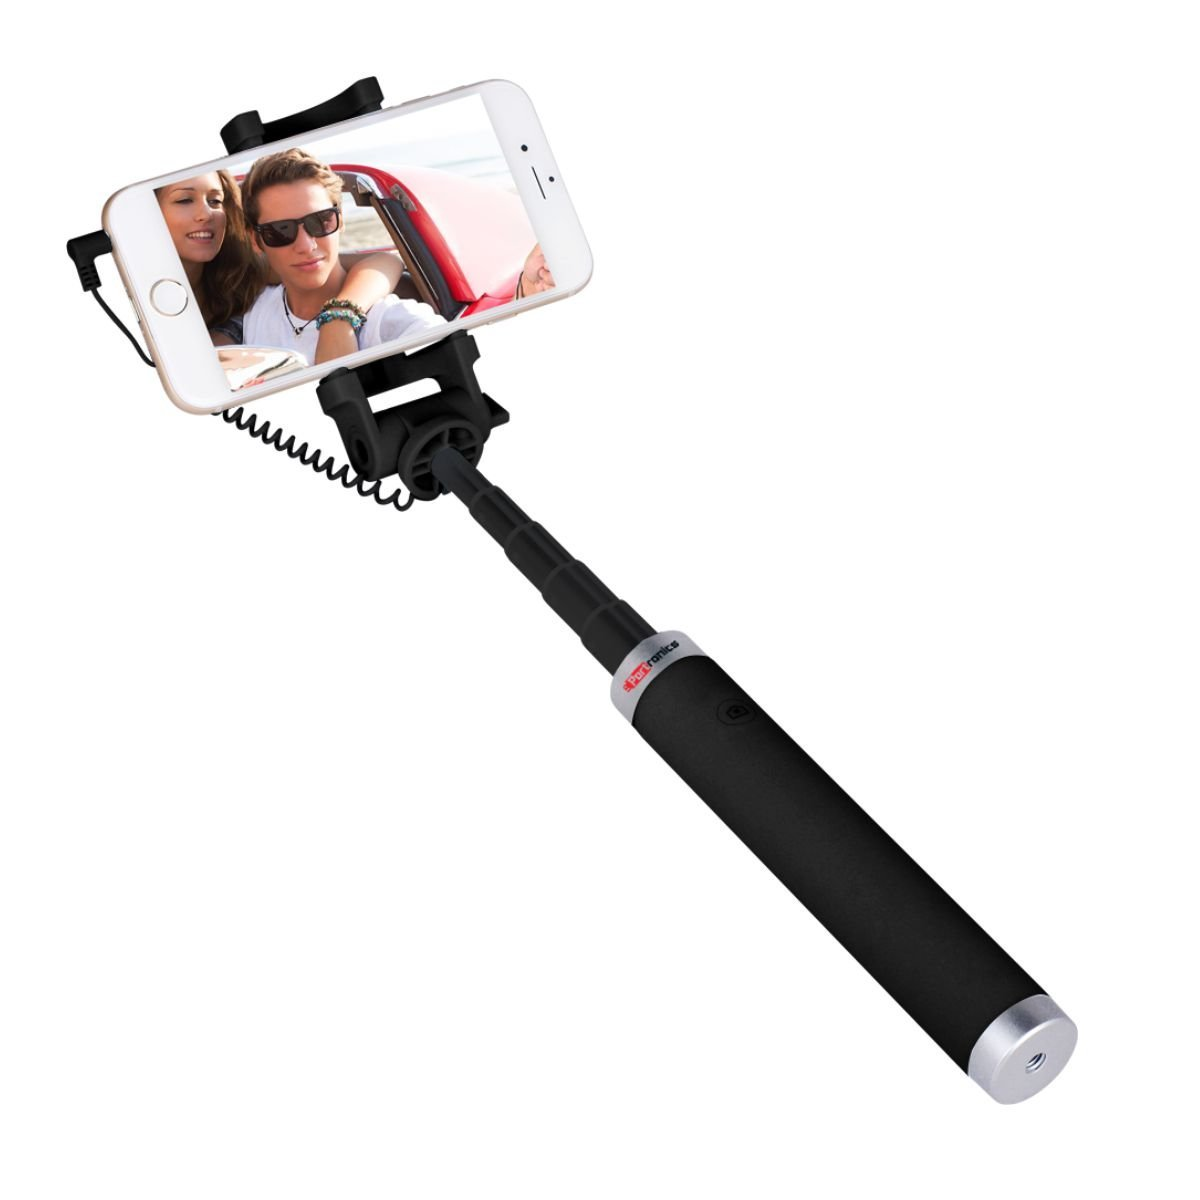 Portronics POR-853_Groupy Portable Wired Selfie Stick has a User Friendly Design with a Rotational H